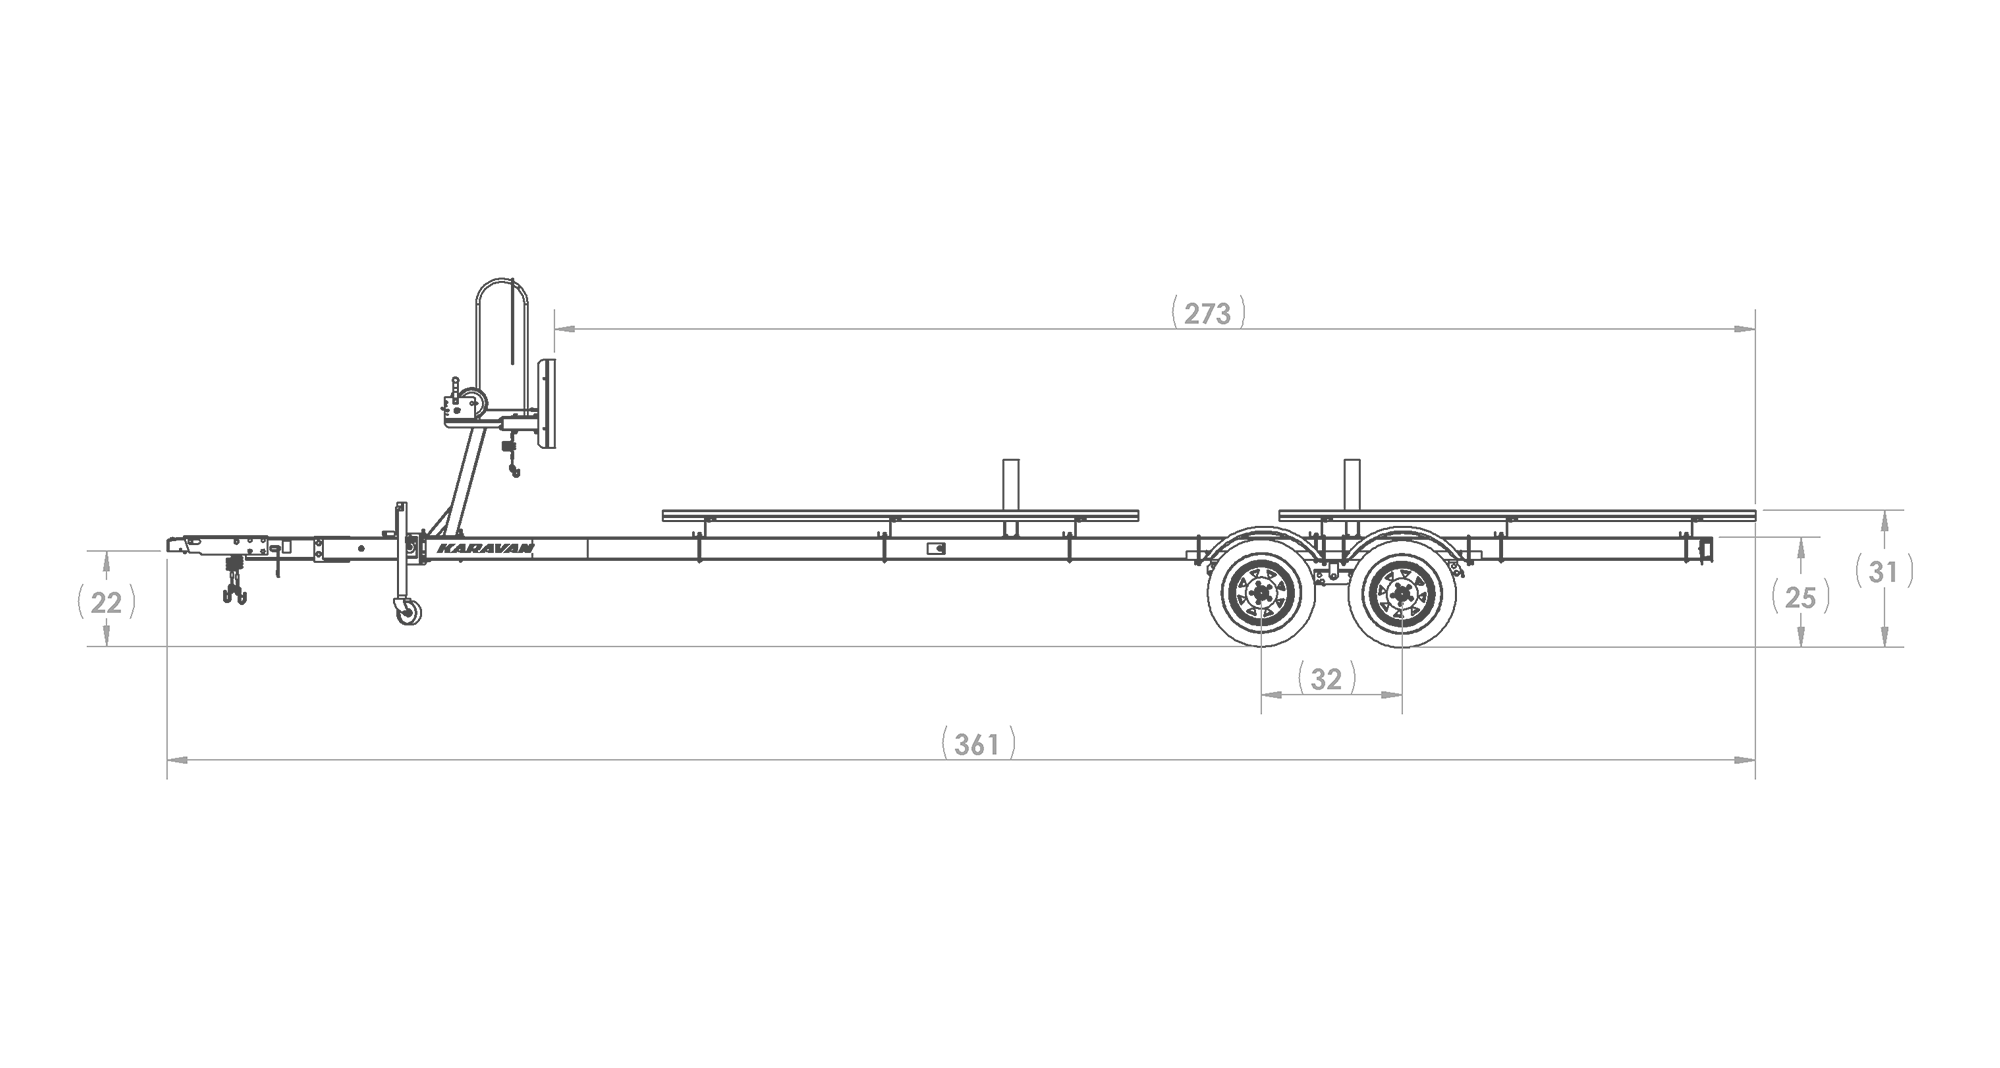 Karavan Trailer's Tandem Axel Large Pontoon Trailer, model number KDPT-2225, Side View Measurements